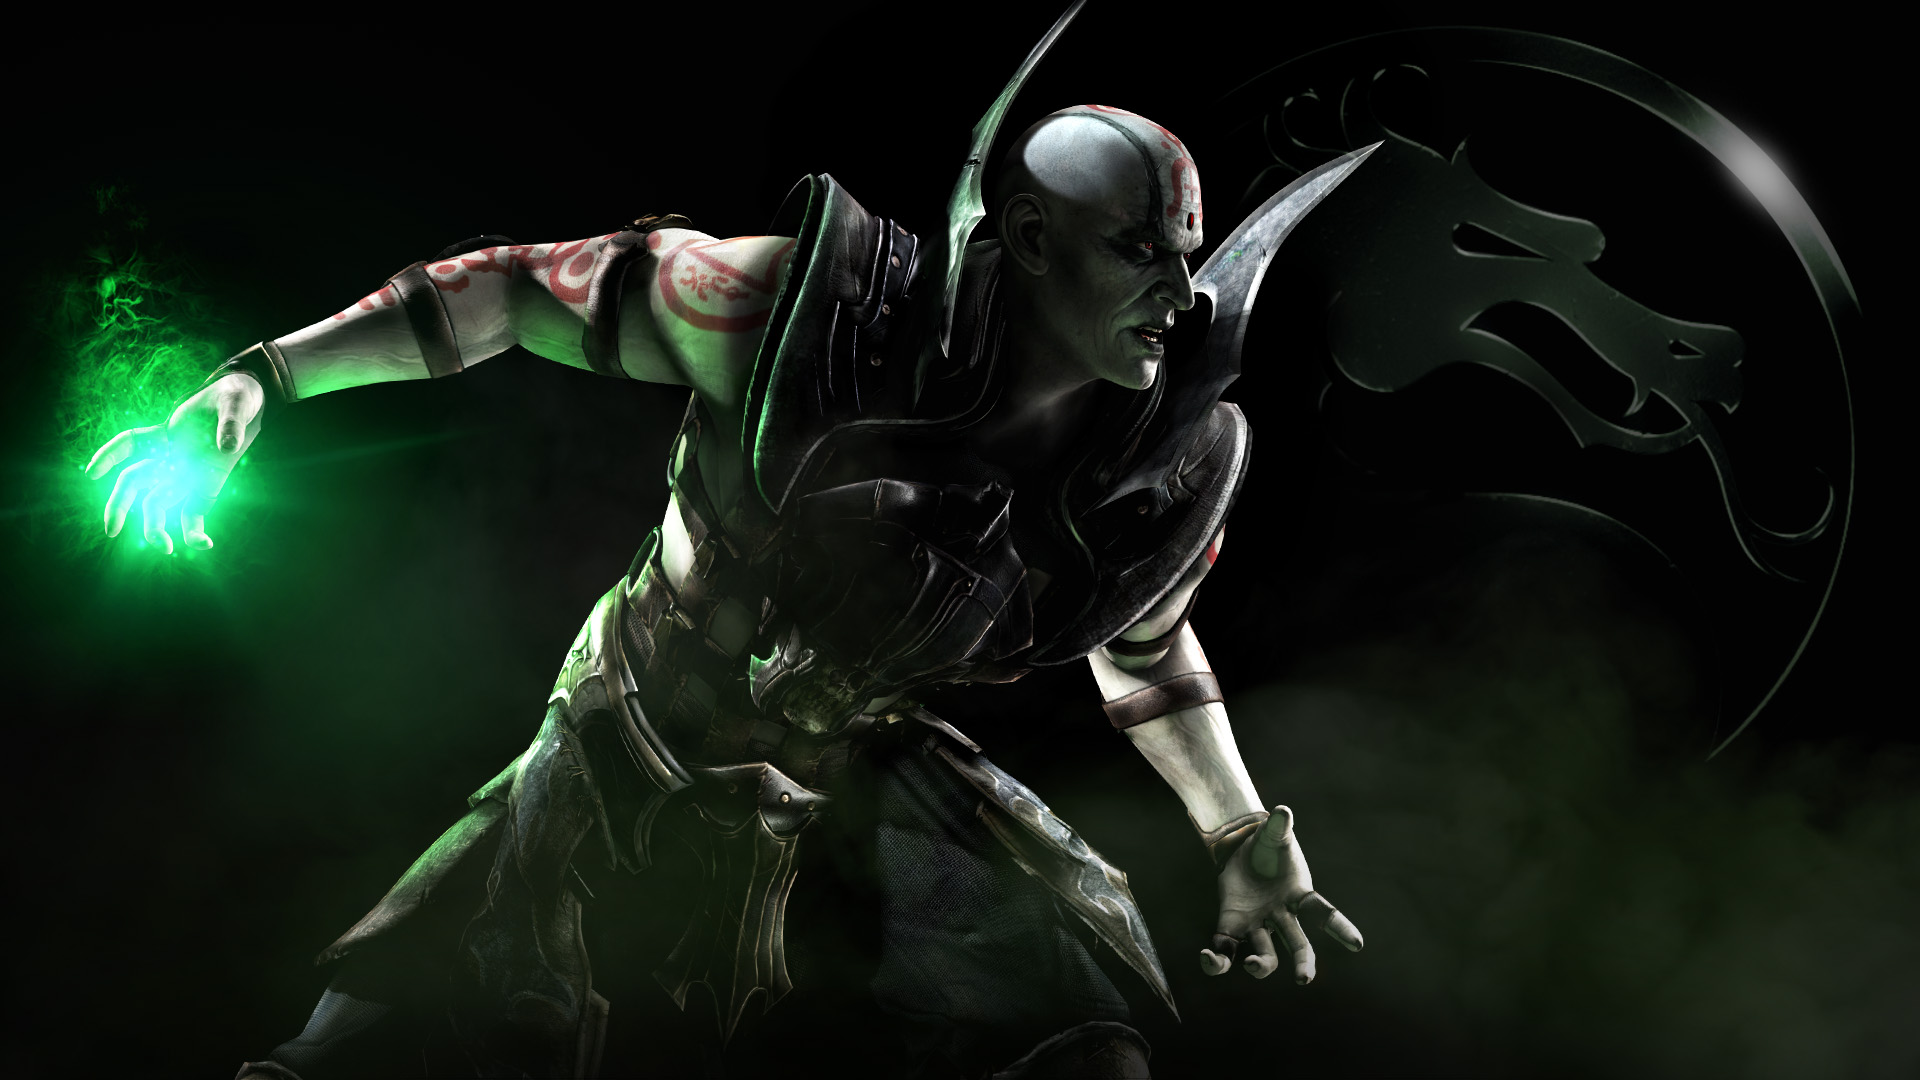 Check out Quan Chi's moves from Mortal Kombat X!